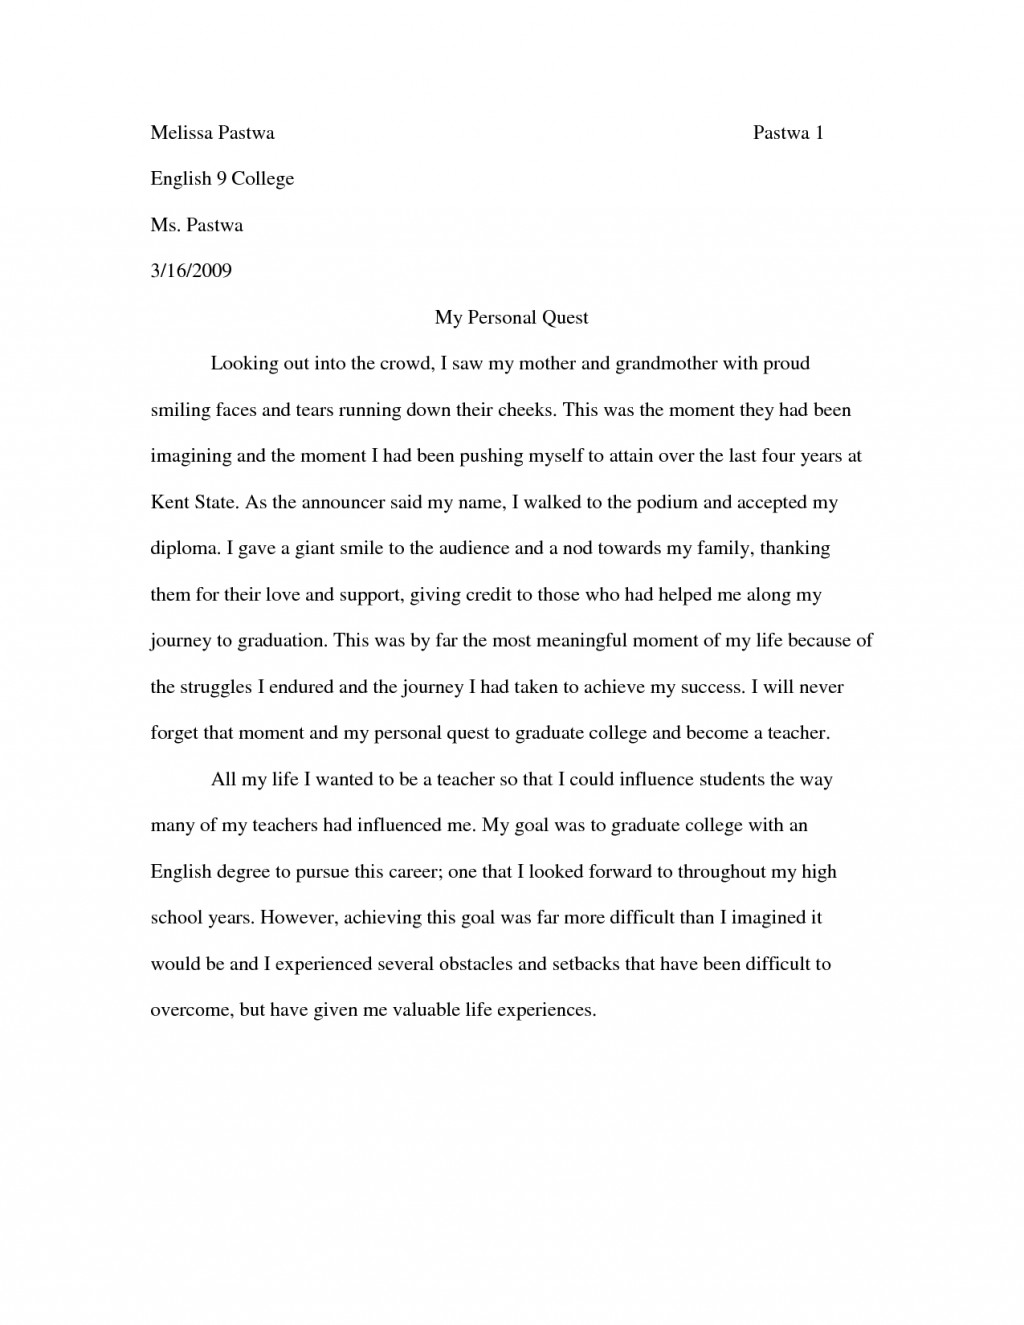 001 How To Write Dialogue In An Essay Narrativeamples With Writings And Essays Putample Onwe Bioinnovate Co Re Mla Between Two Characters Apa Style Quote Singular Narrative Large